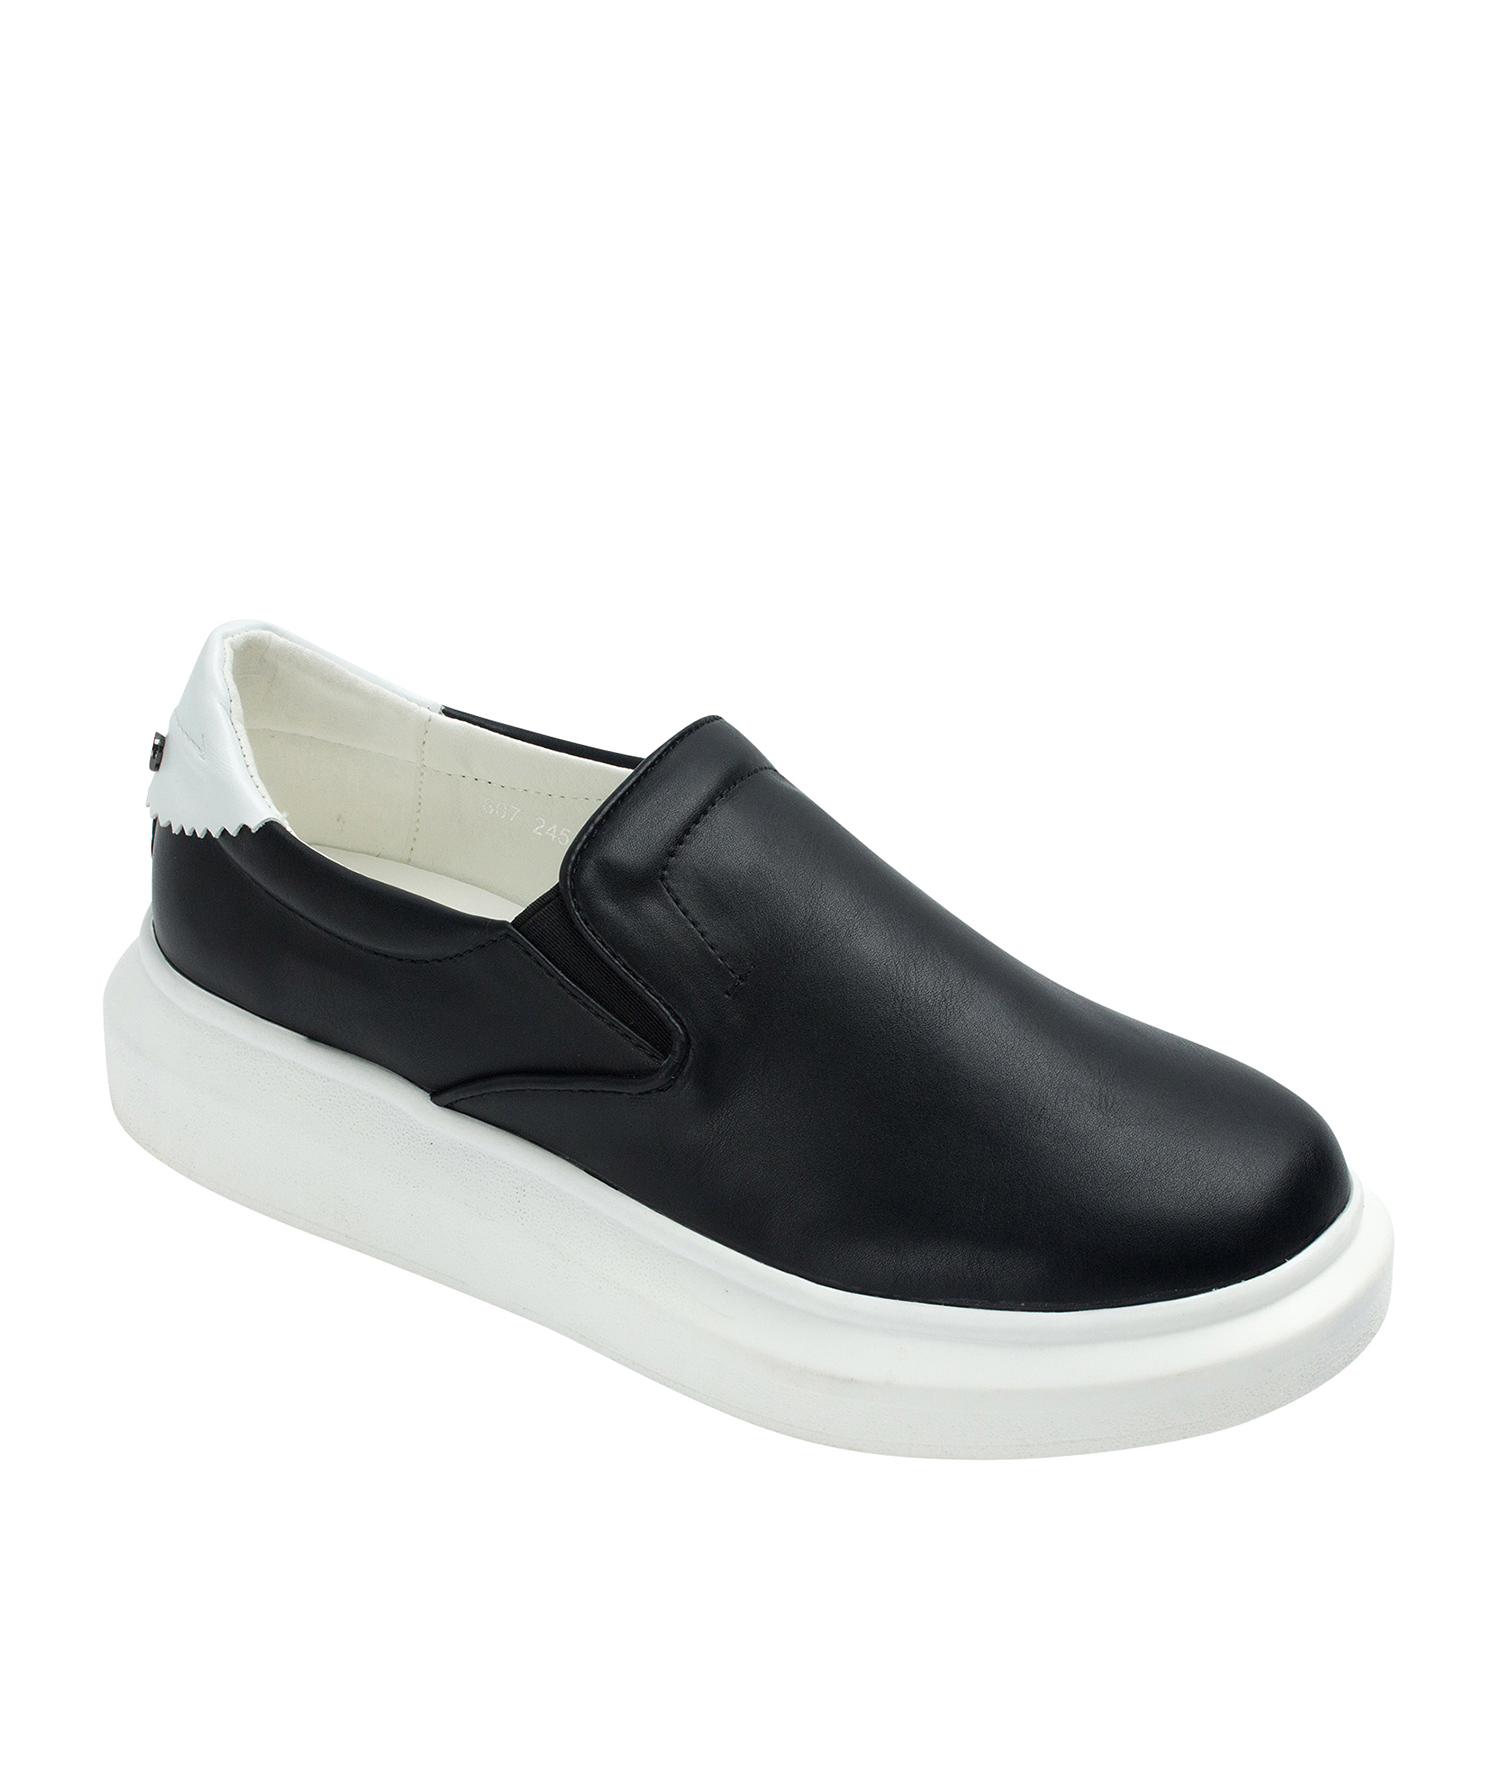 Thick Sole Slip On Sneakers